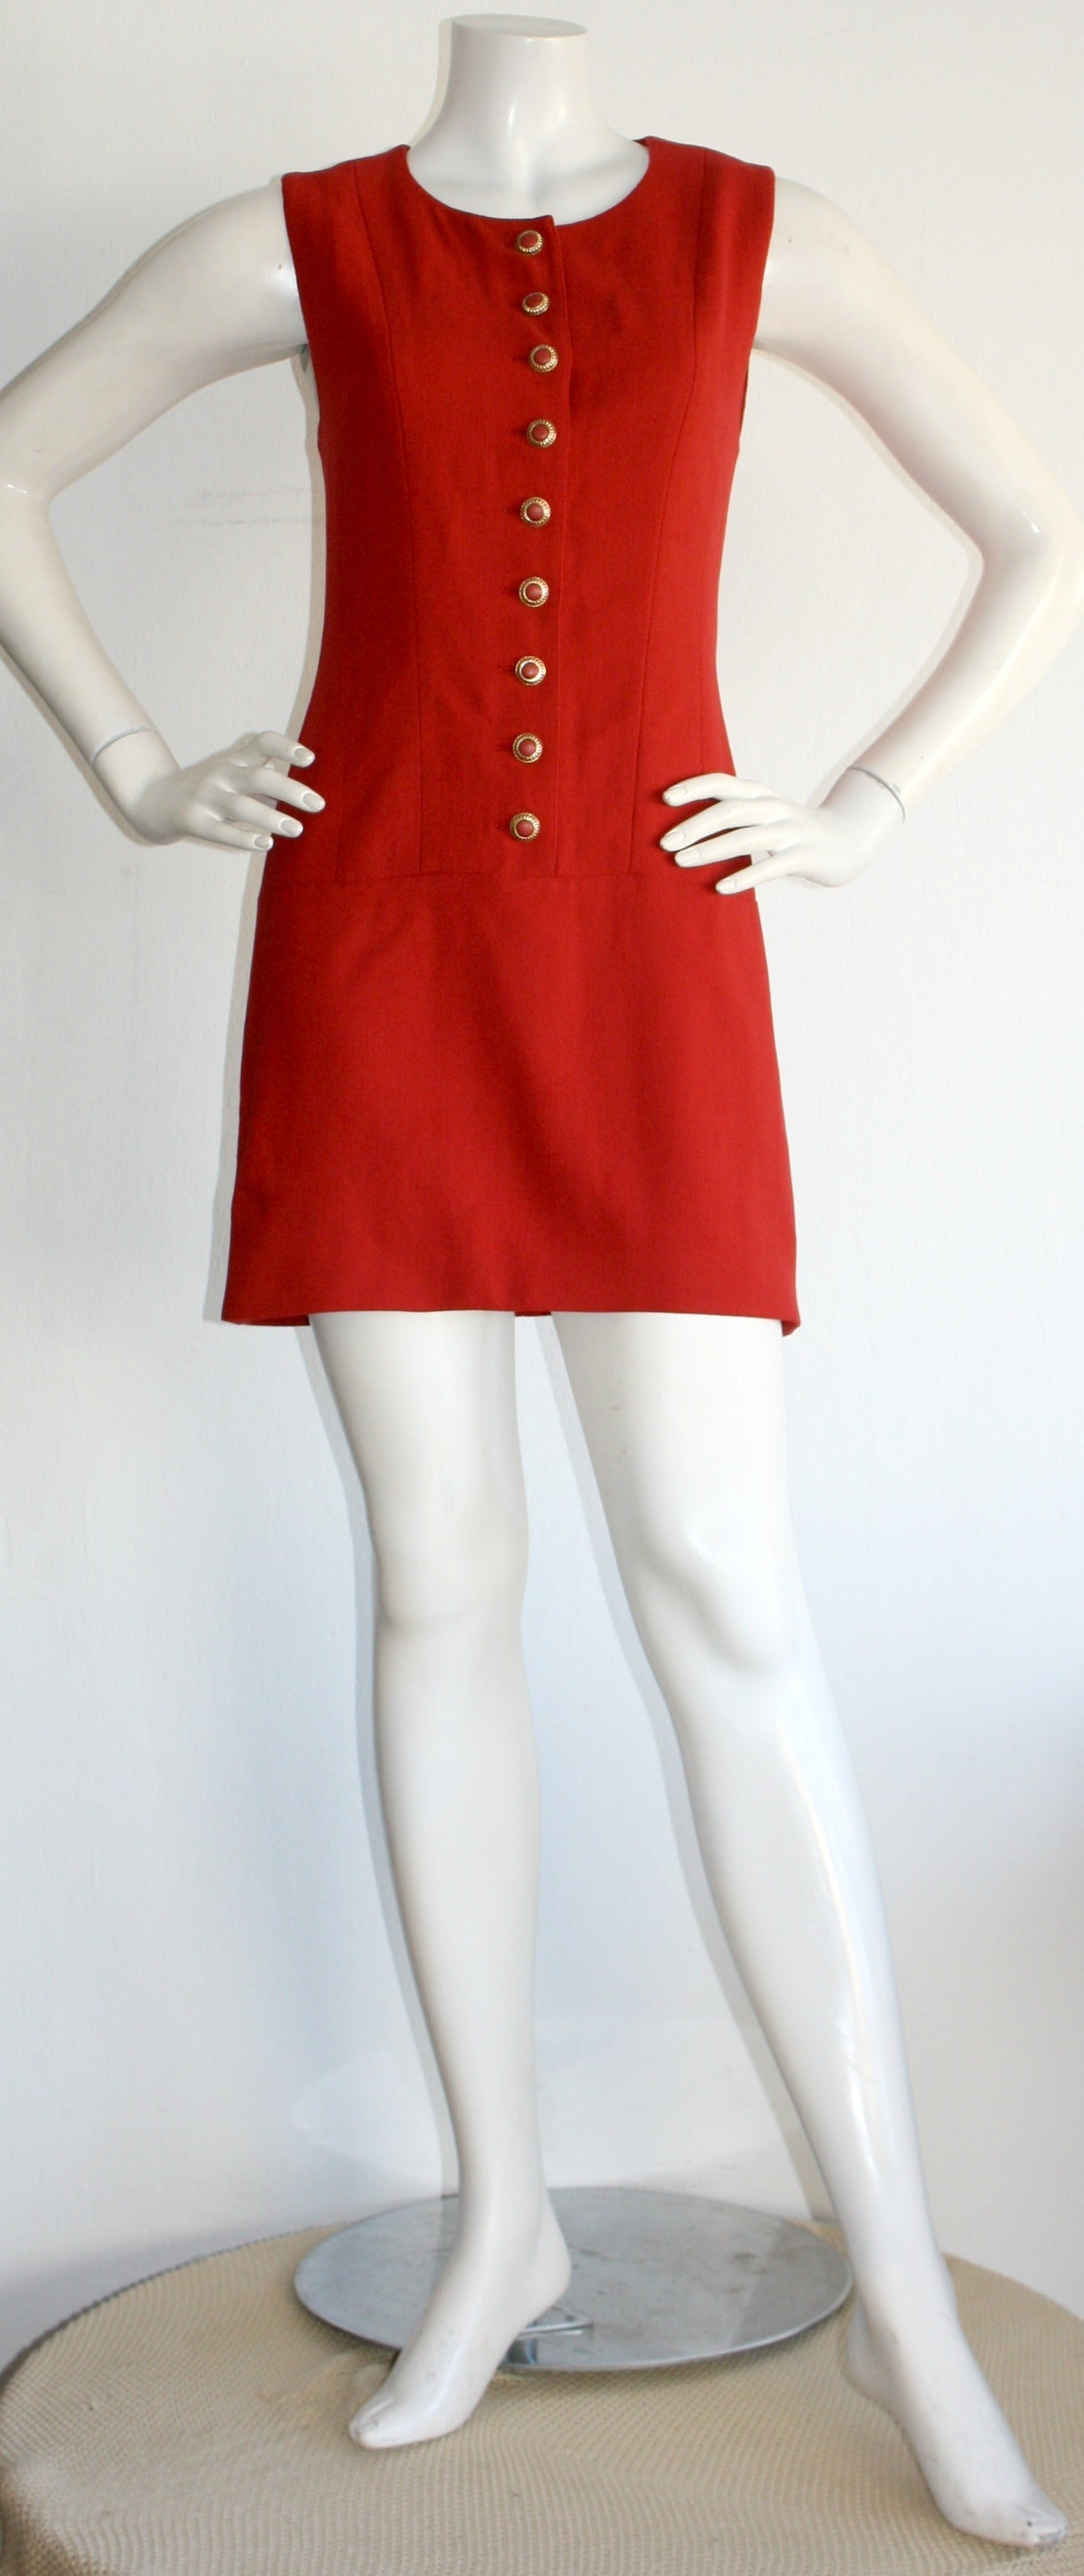 Vintage Karl Lagerfeld 1990s Does 1960s Red Scooter Dress 2